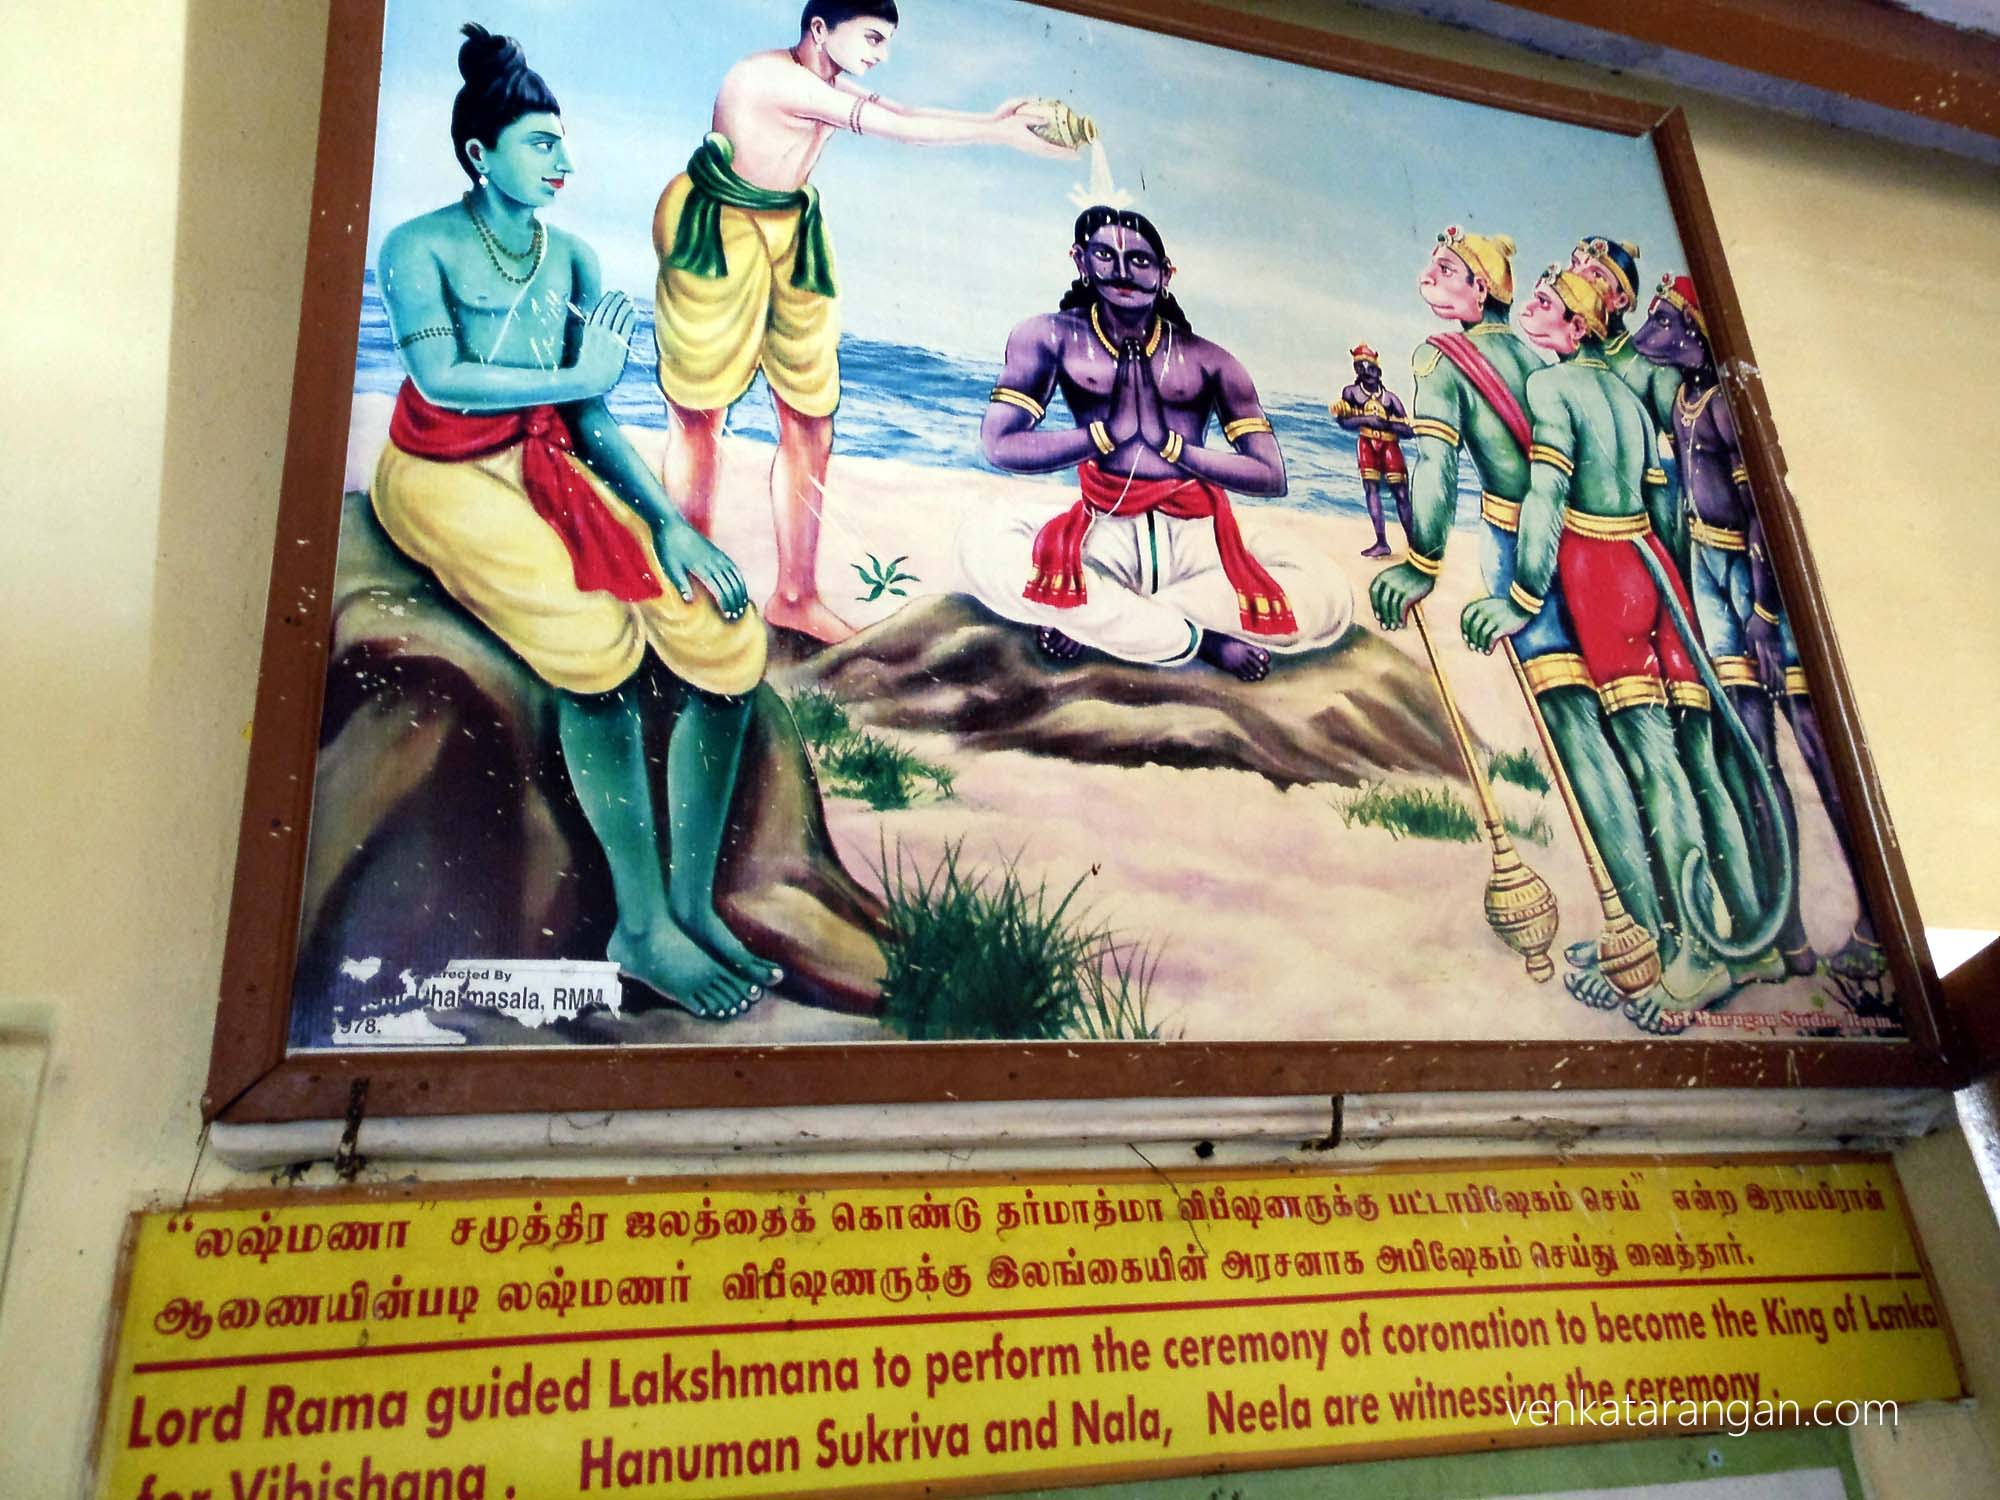 This holy place is where Lord Rama conducted crowning (Pattabhisekam) of Vibheeshunar, brother of King Ravana after the battle